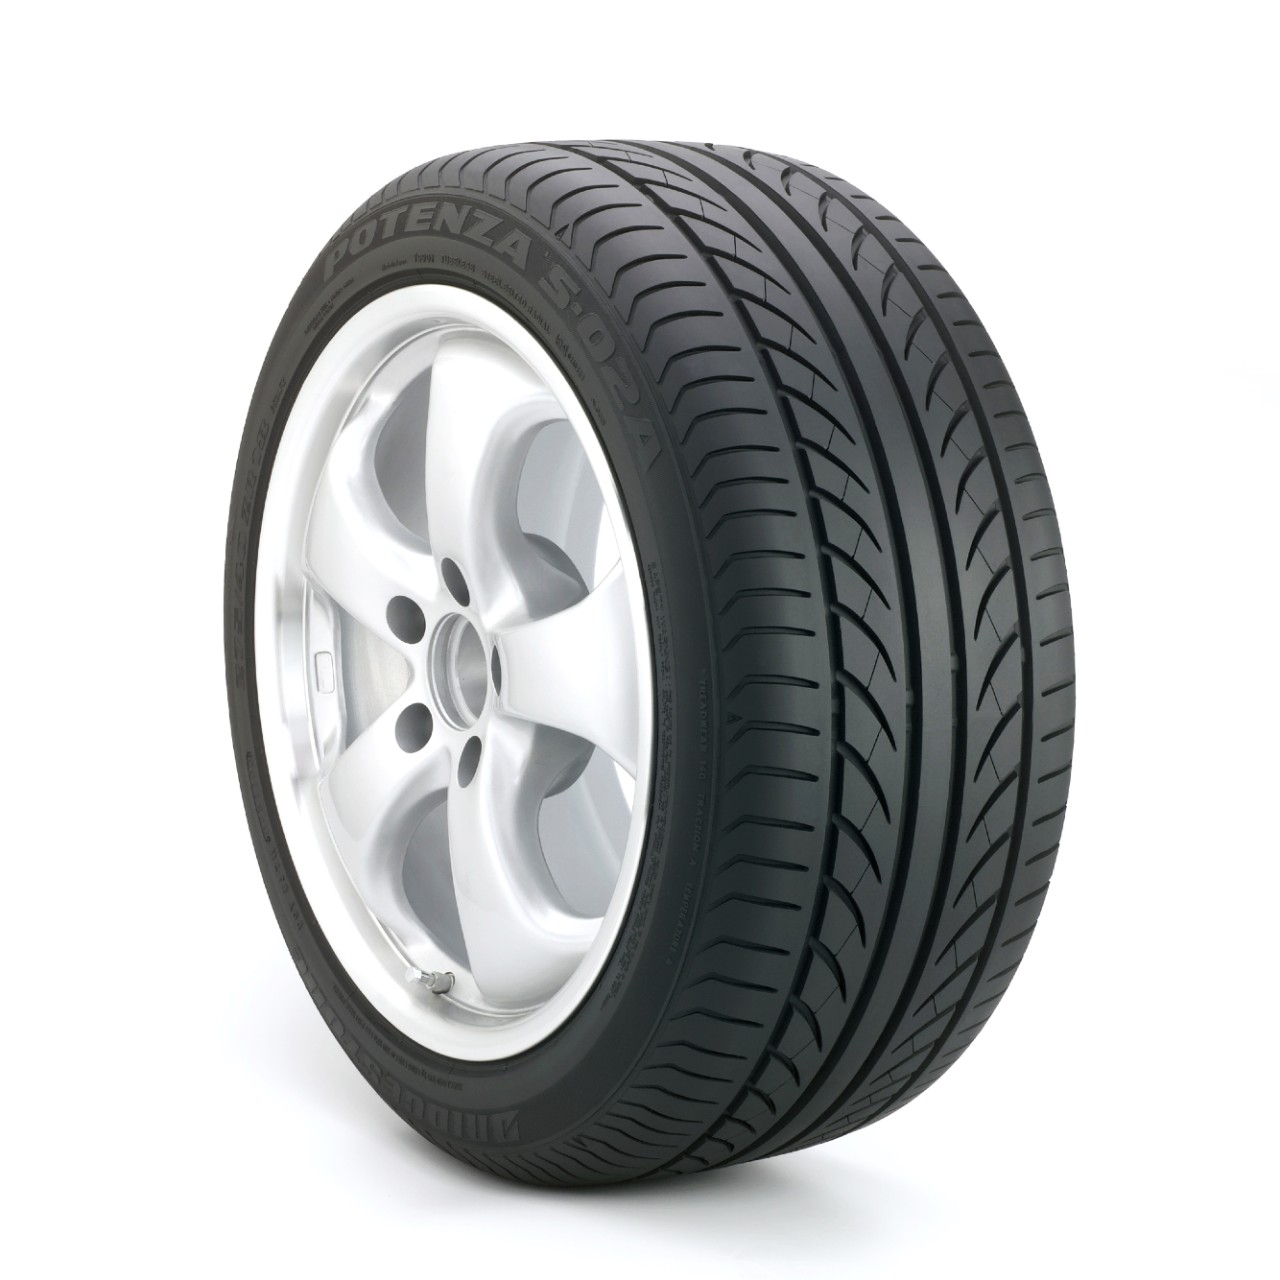 Car tires for rain - bridgestone